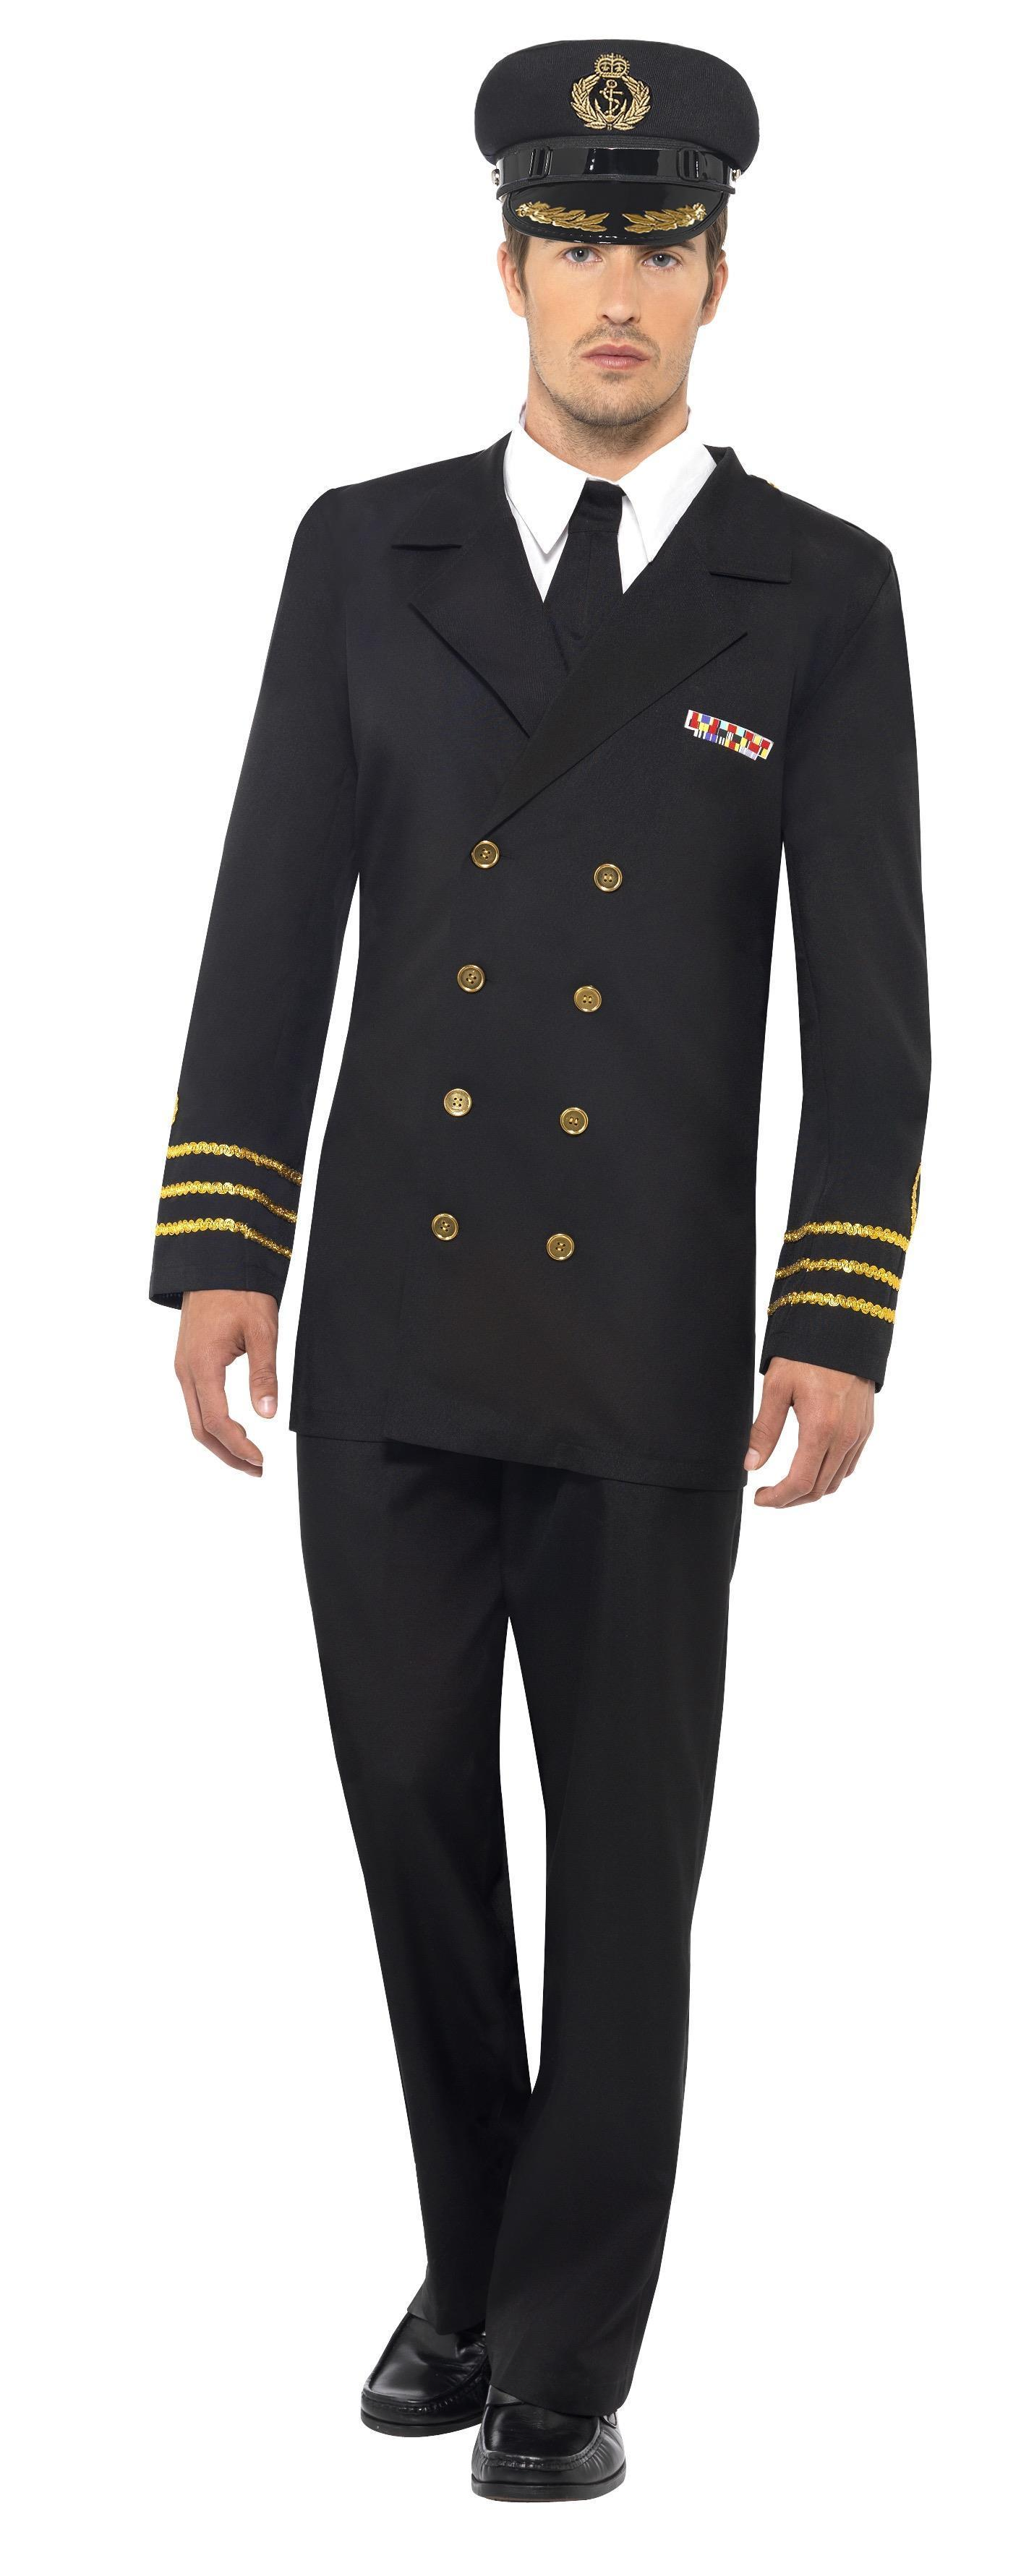 Navy Officer Costume Black